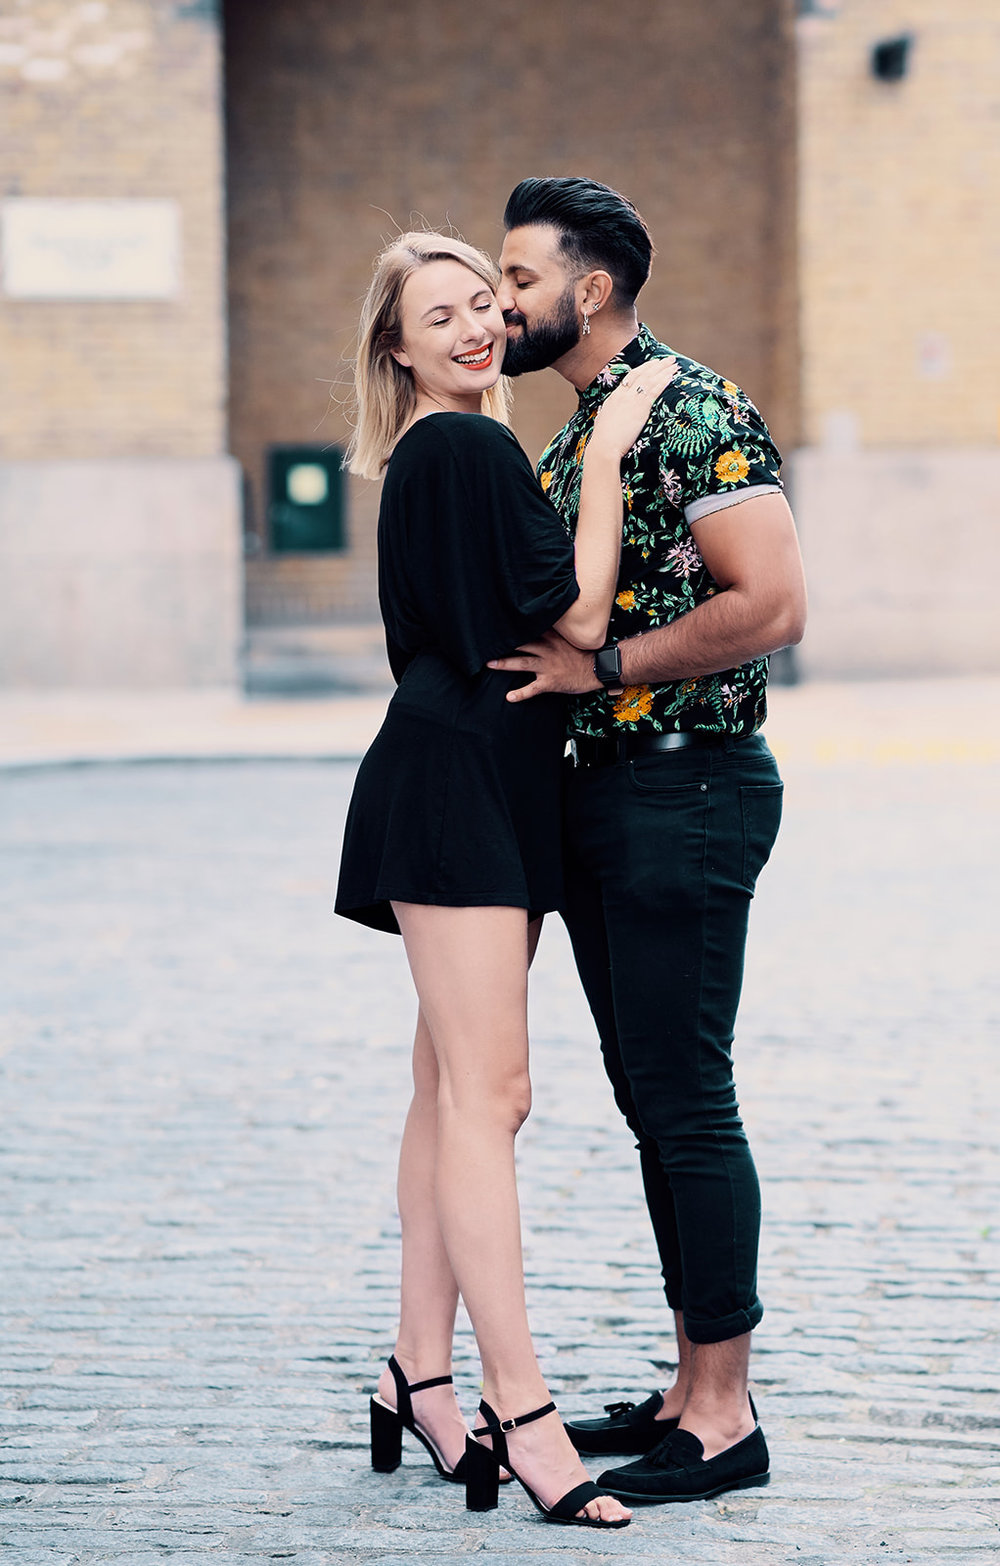 engagement-photo-shoot-london-location-by-afewgoodclicks